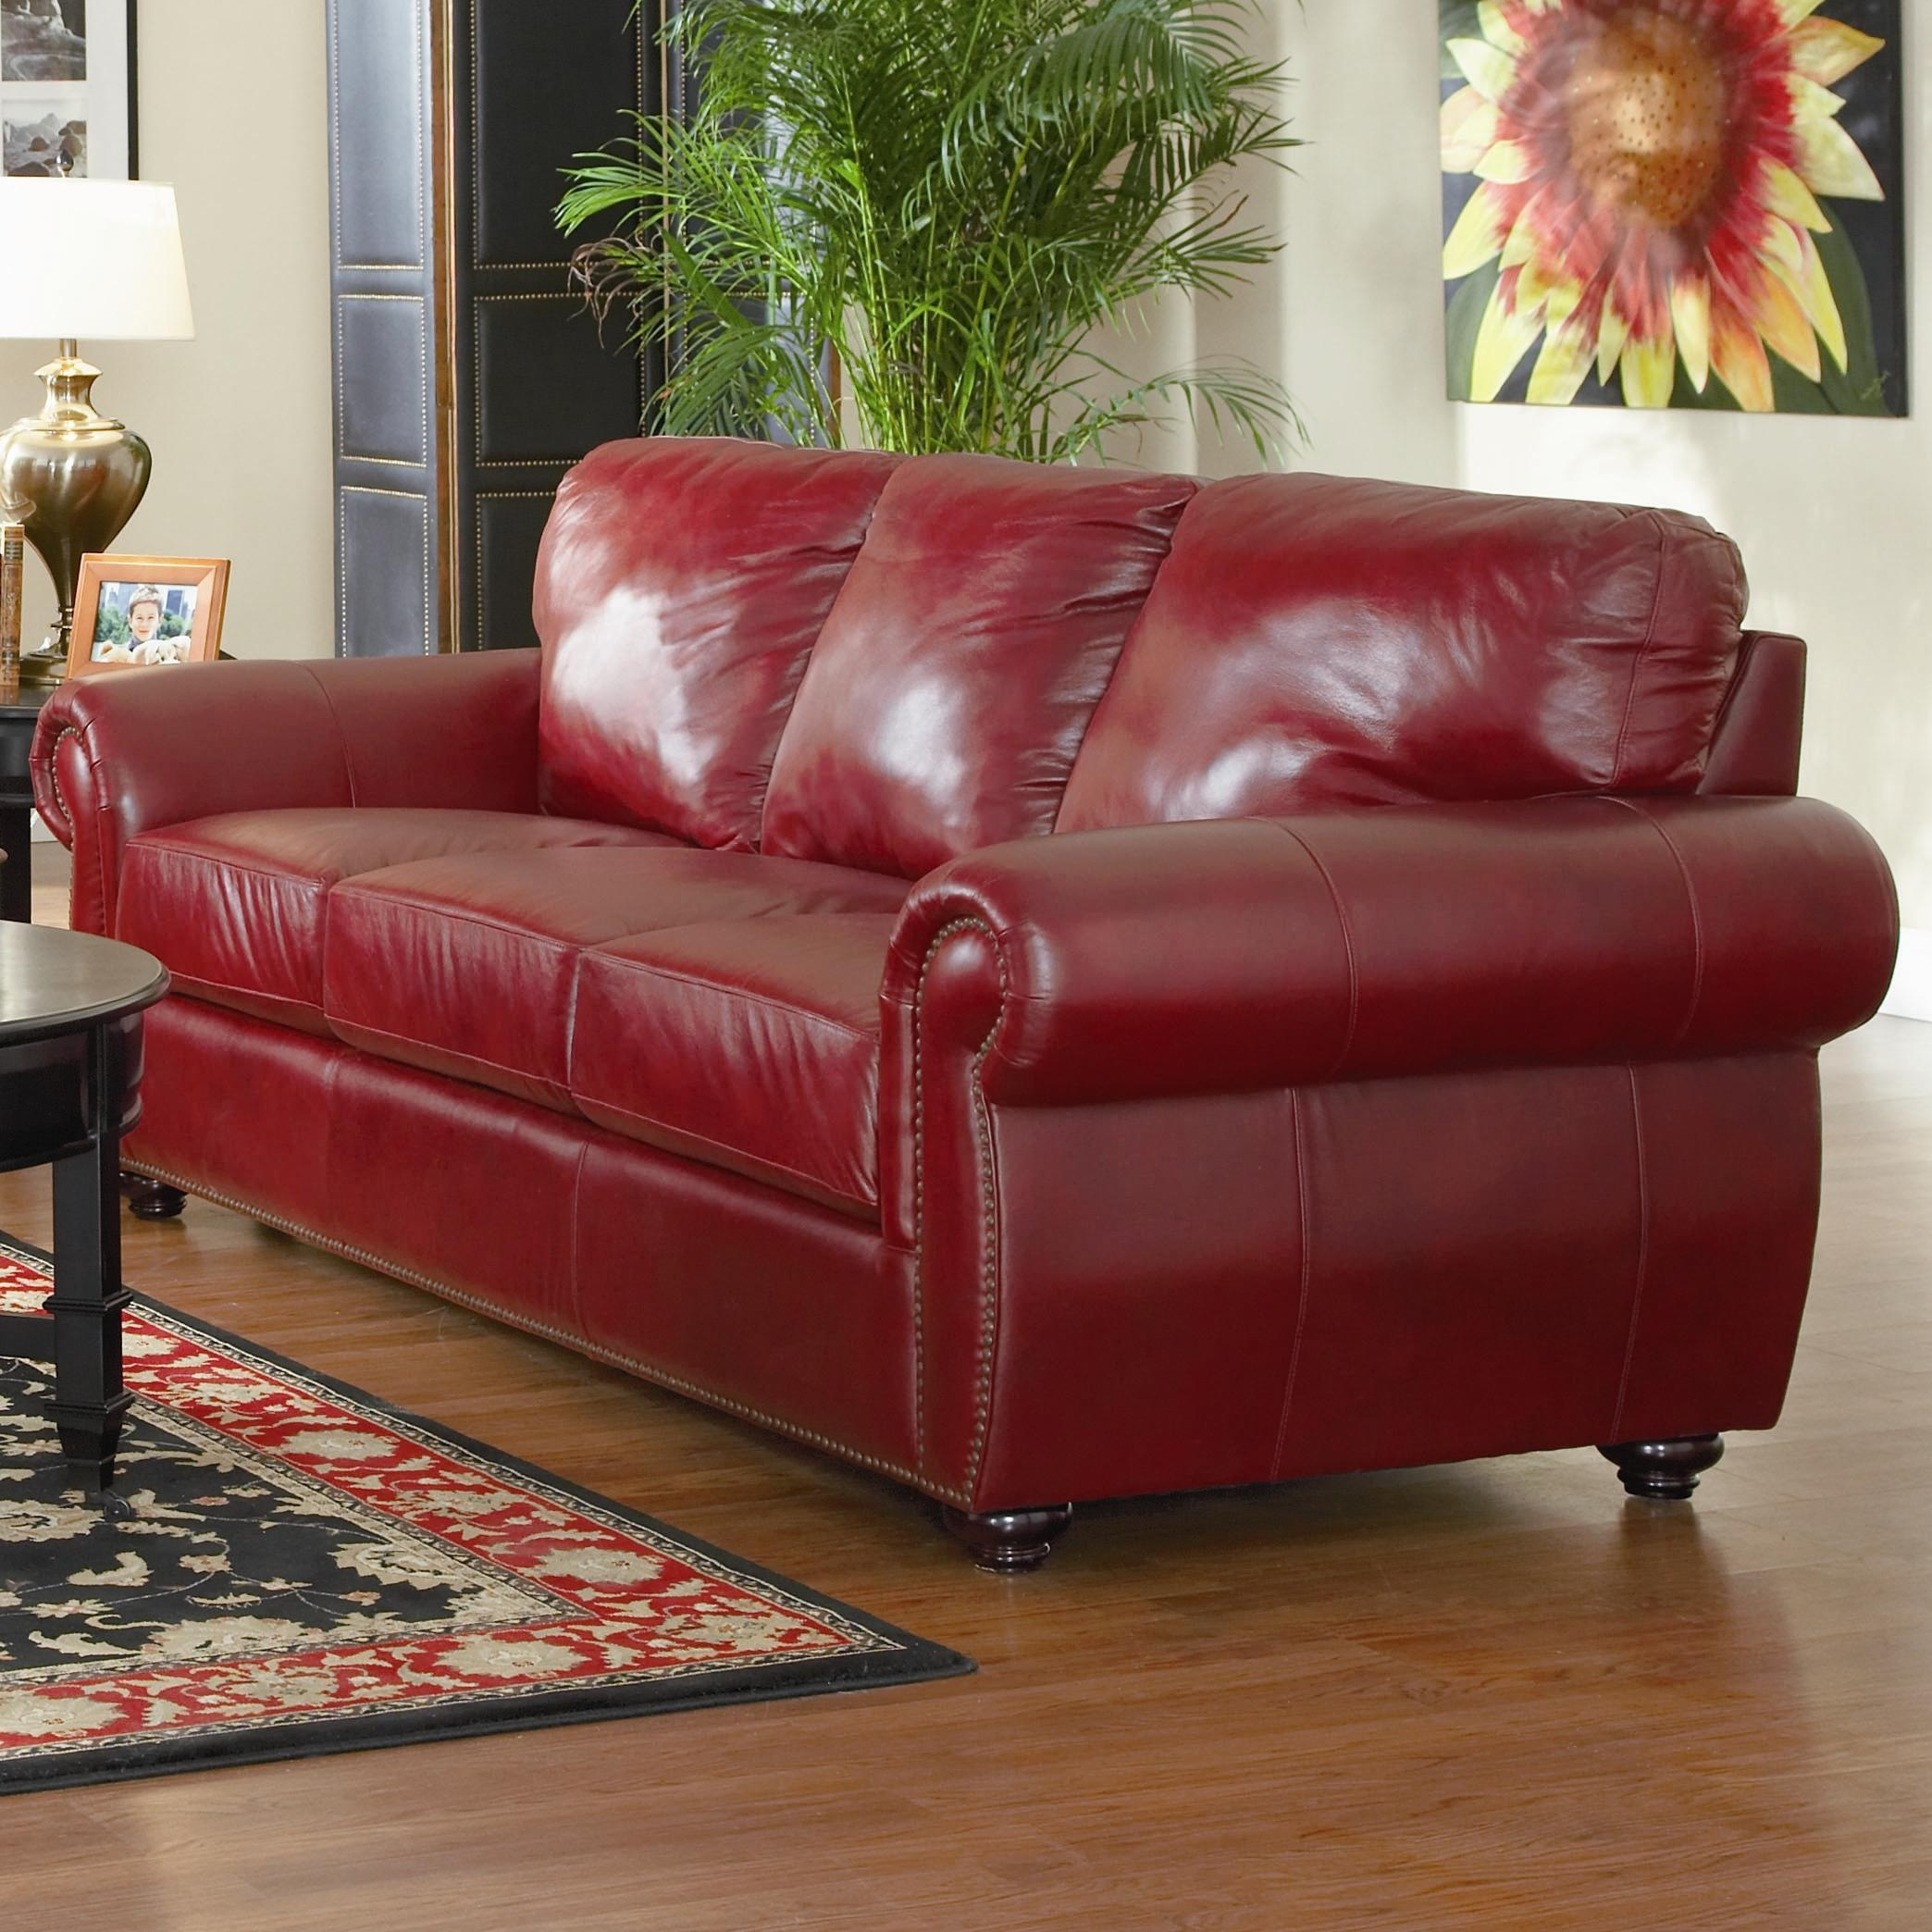 Furniture: Burgundy Leather Sofa And Loveseat | Burgundy Sofa Regarding Burgundy Leather Sofa Sets (View 5 of 20)